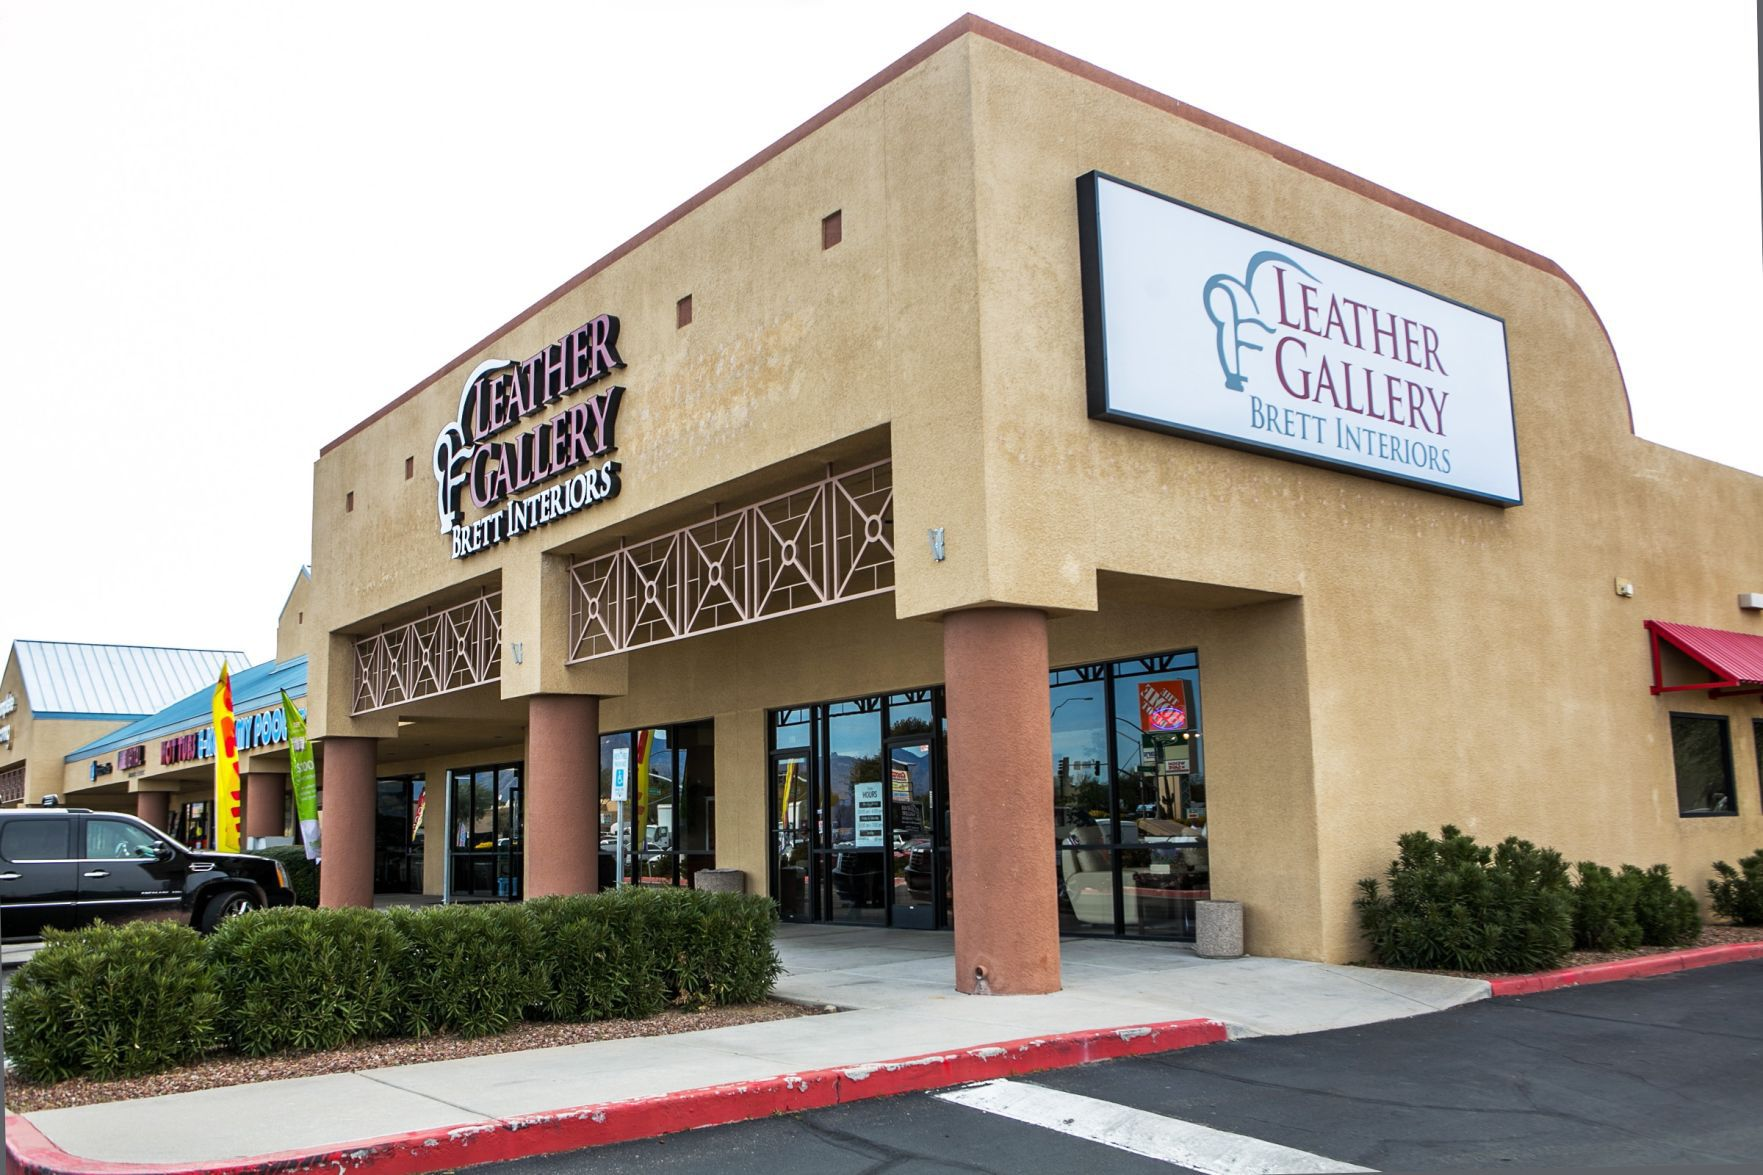 They Recently Opened This Second Location As A Leather Gallery At 3821 W.  Costco Drive In Tucson, AZ. On ...